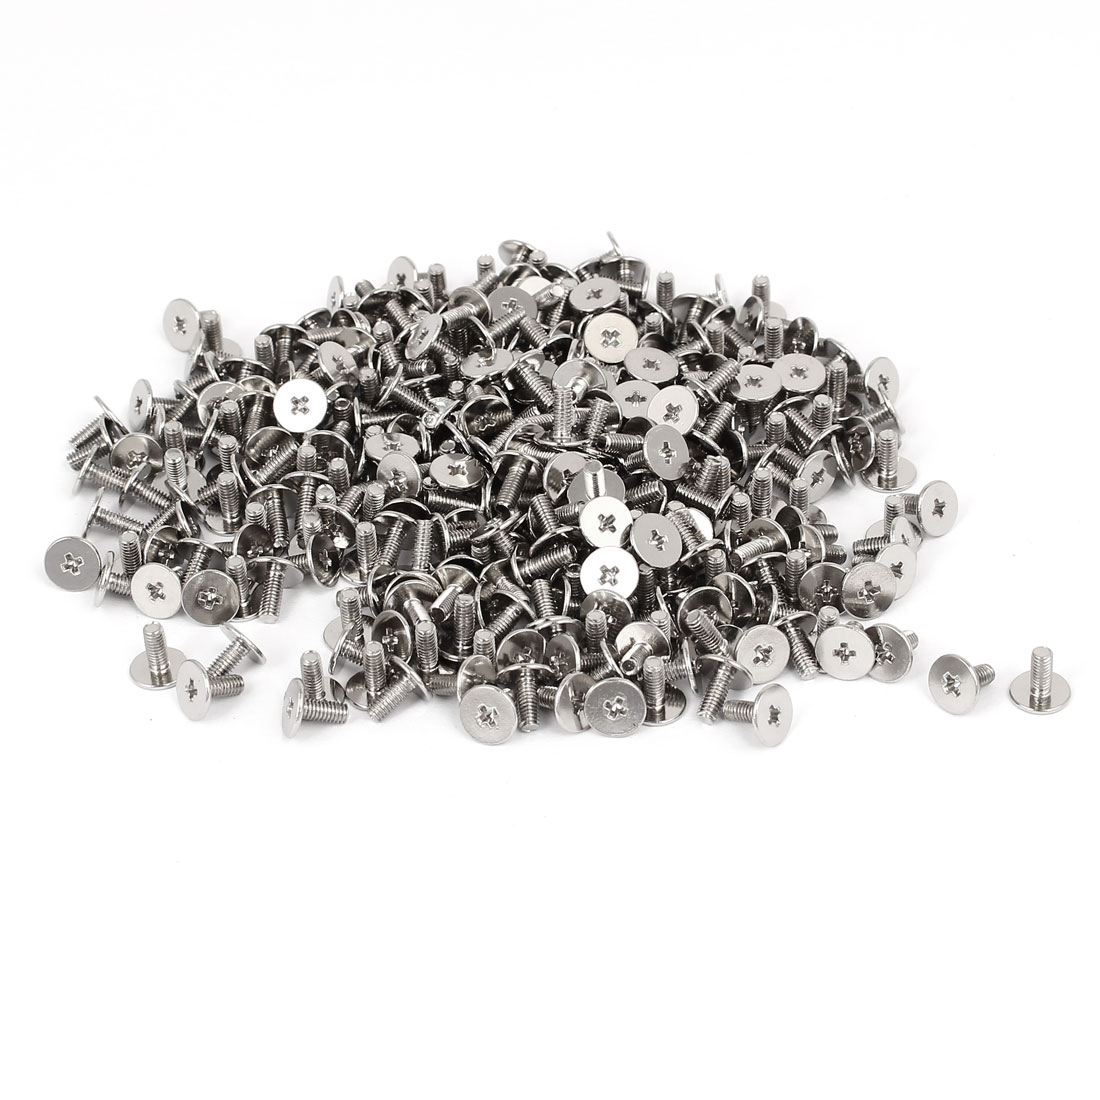 CM2.5x6mm Nickel Plated Phillips Laptop Computer Repair Screw Silver Tone 400pcs